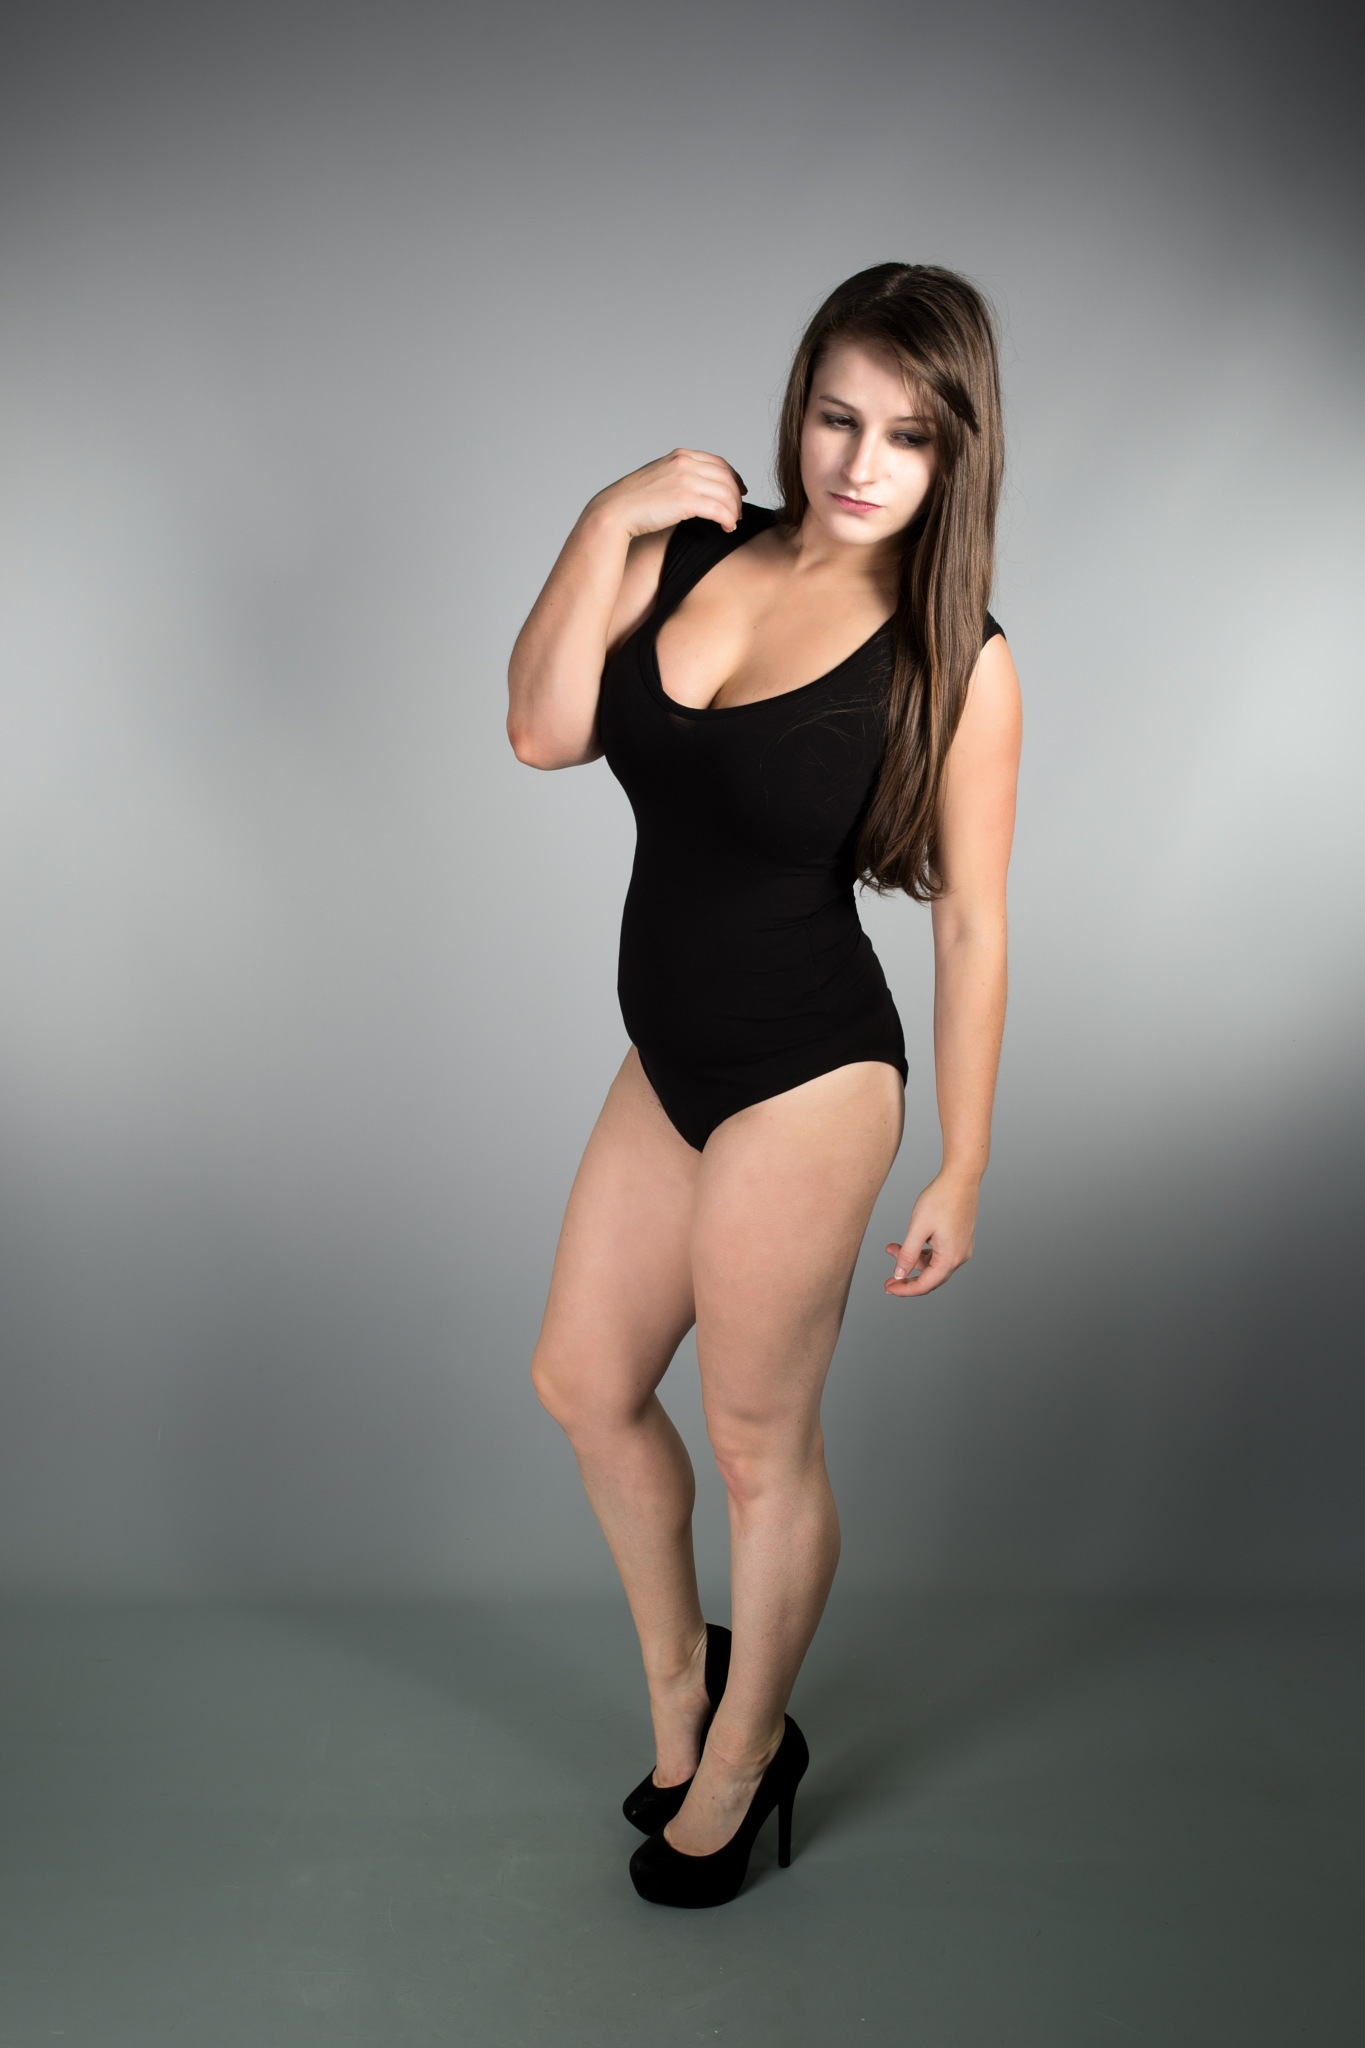 Leotard by SpringfieldPhotography